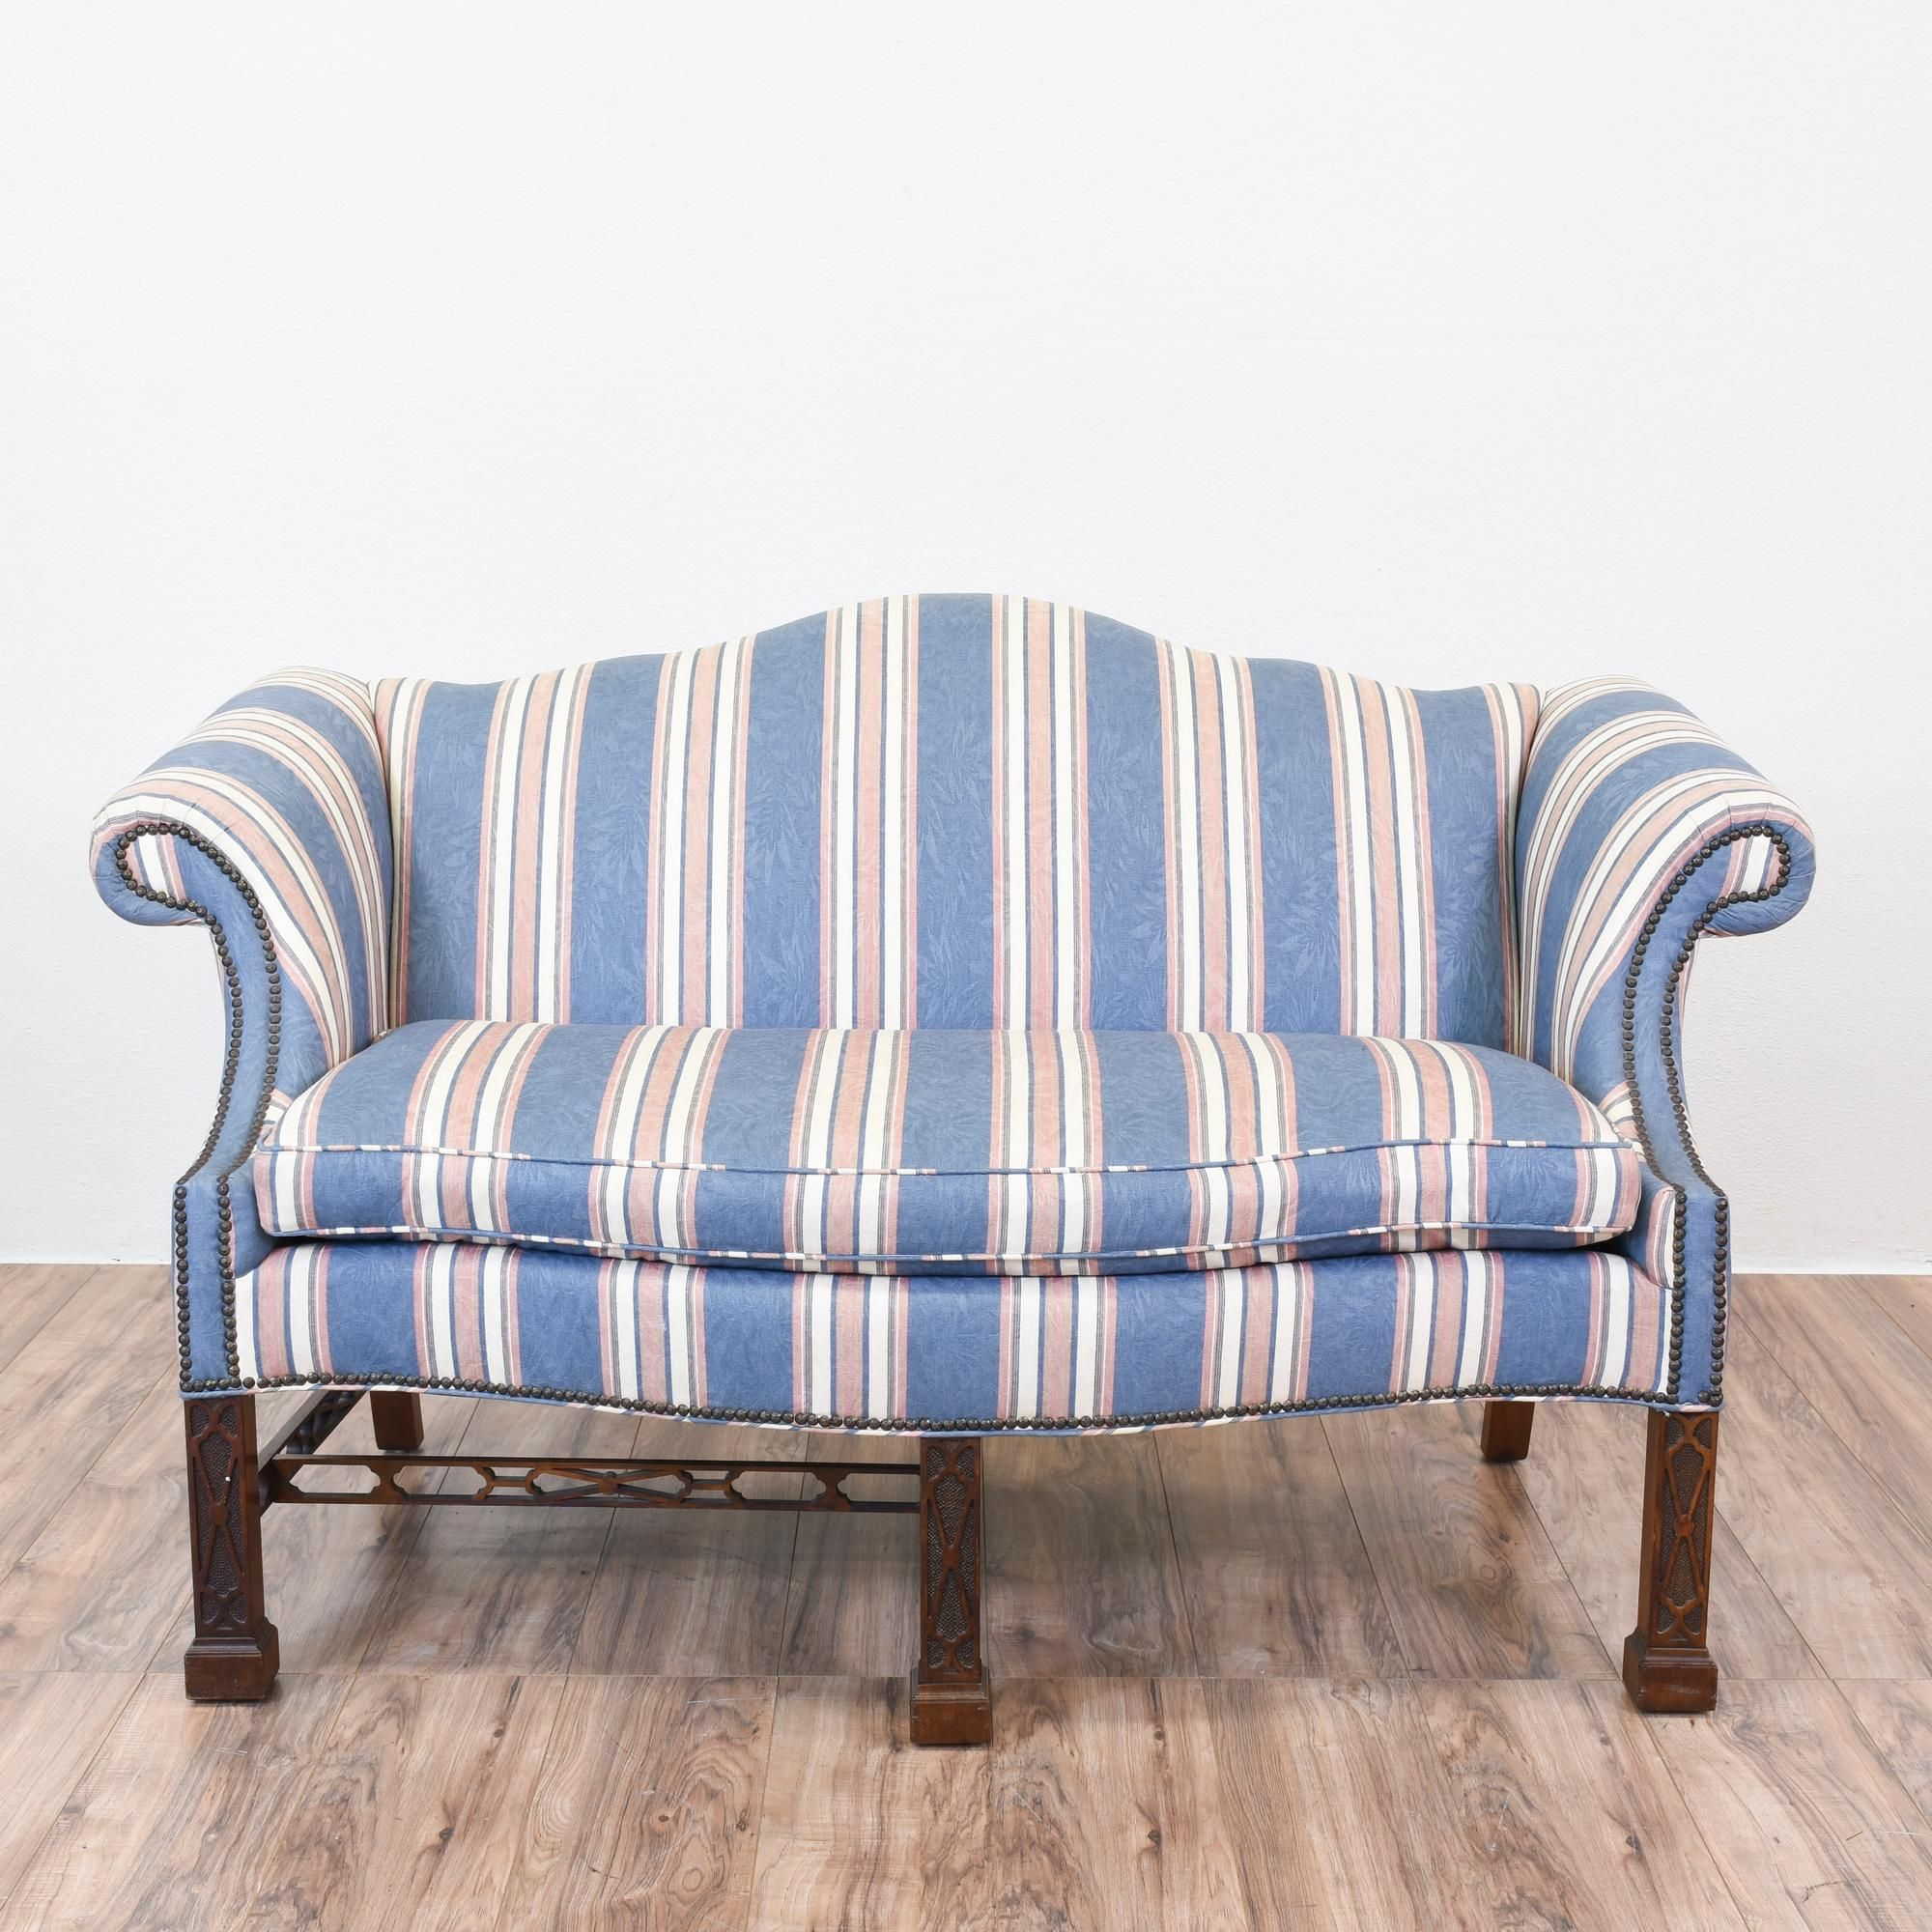 This camelback chippendale sofa is upholstered in a ...